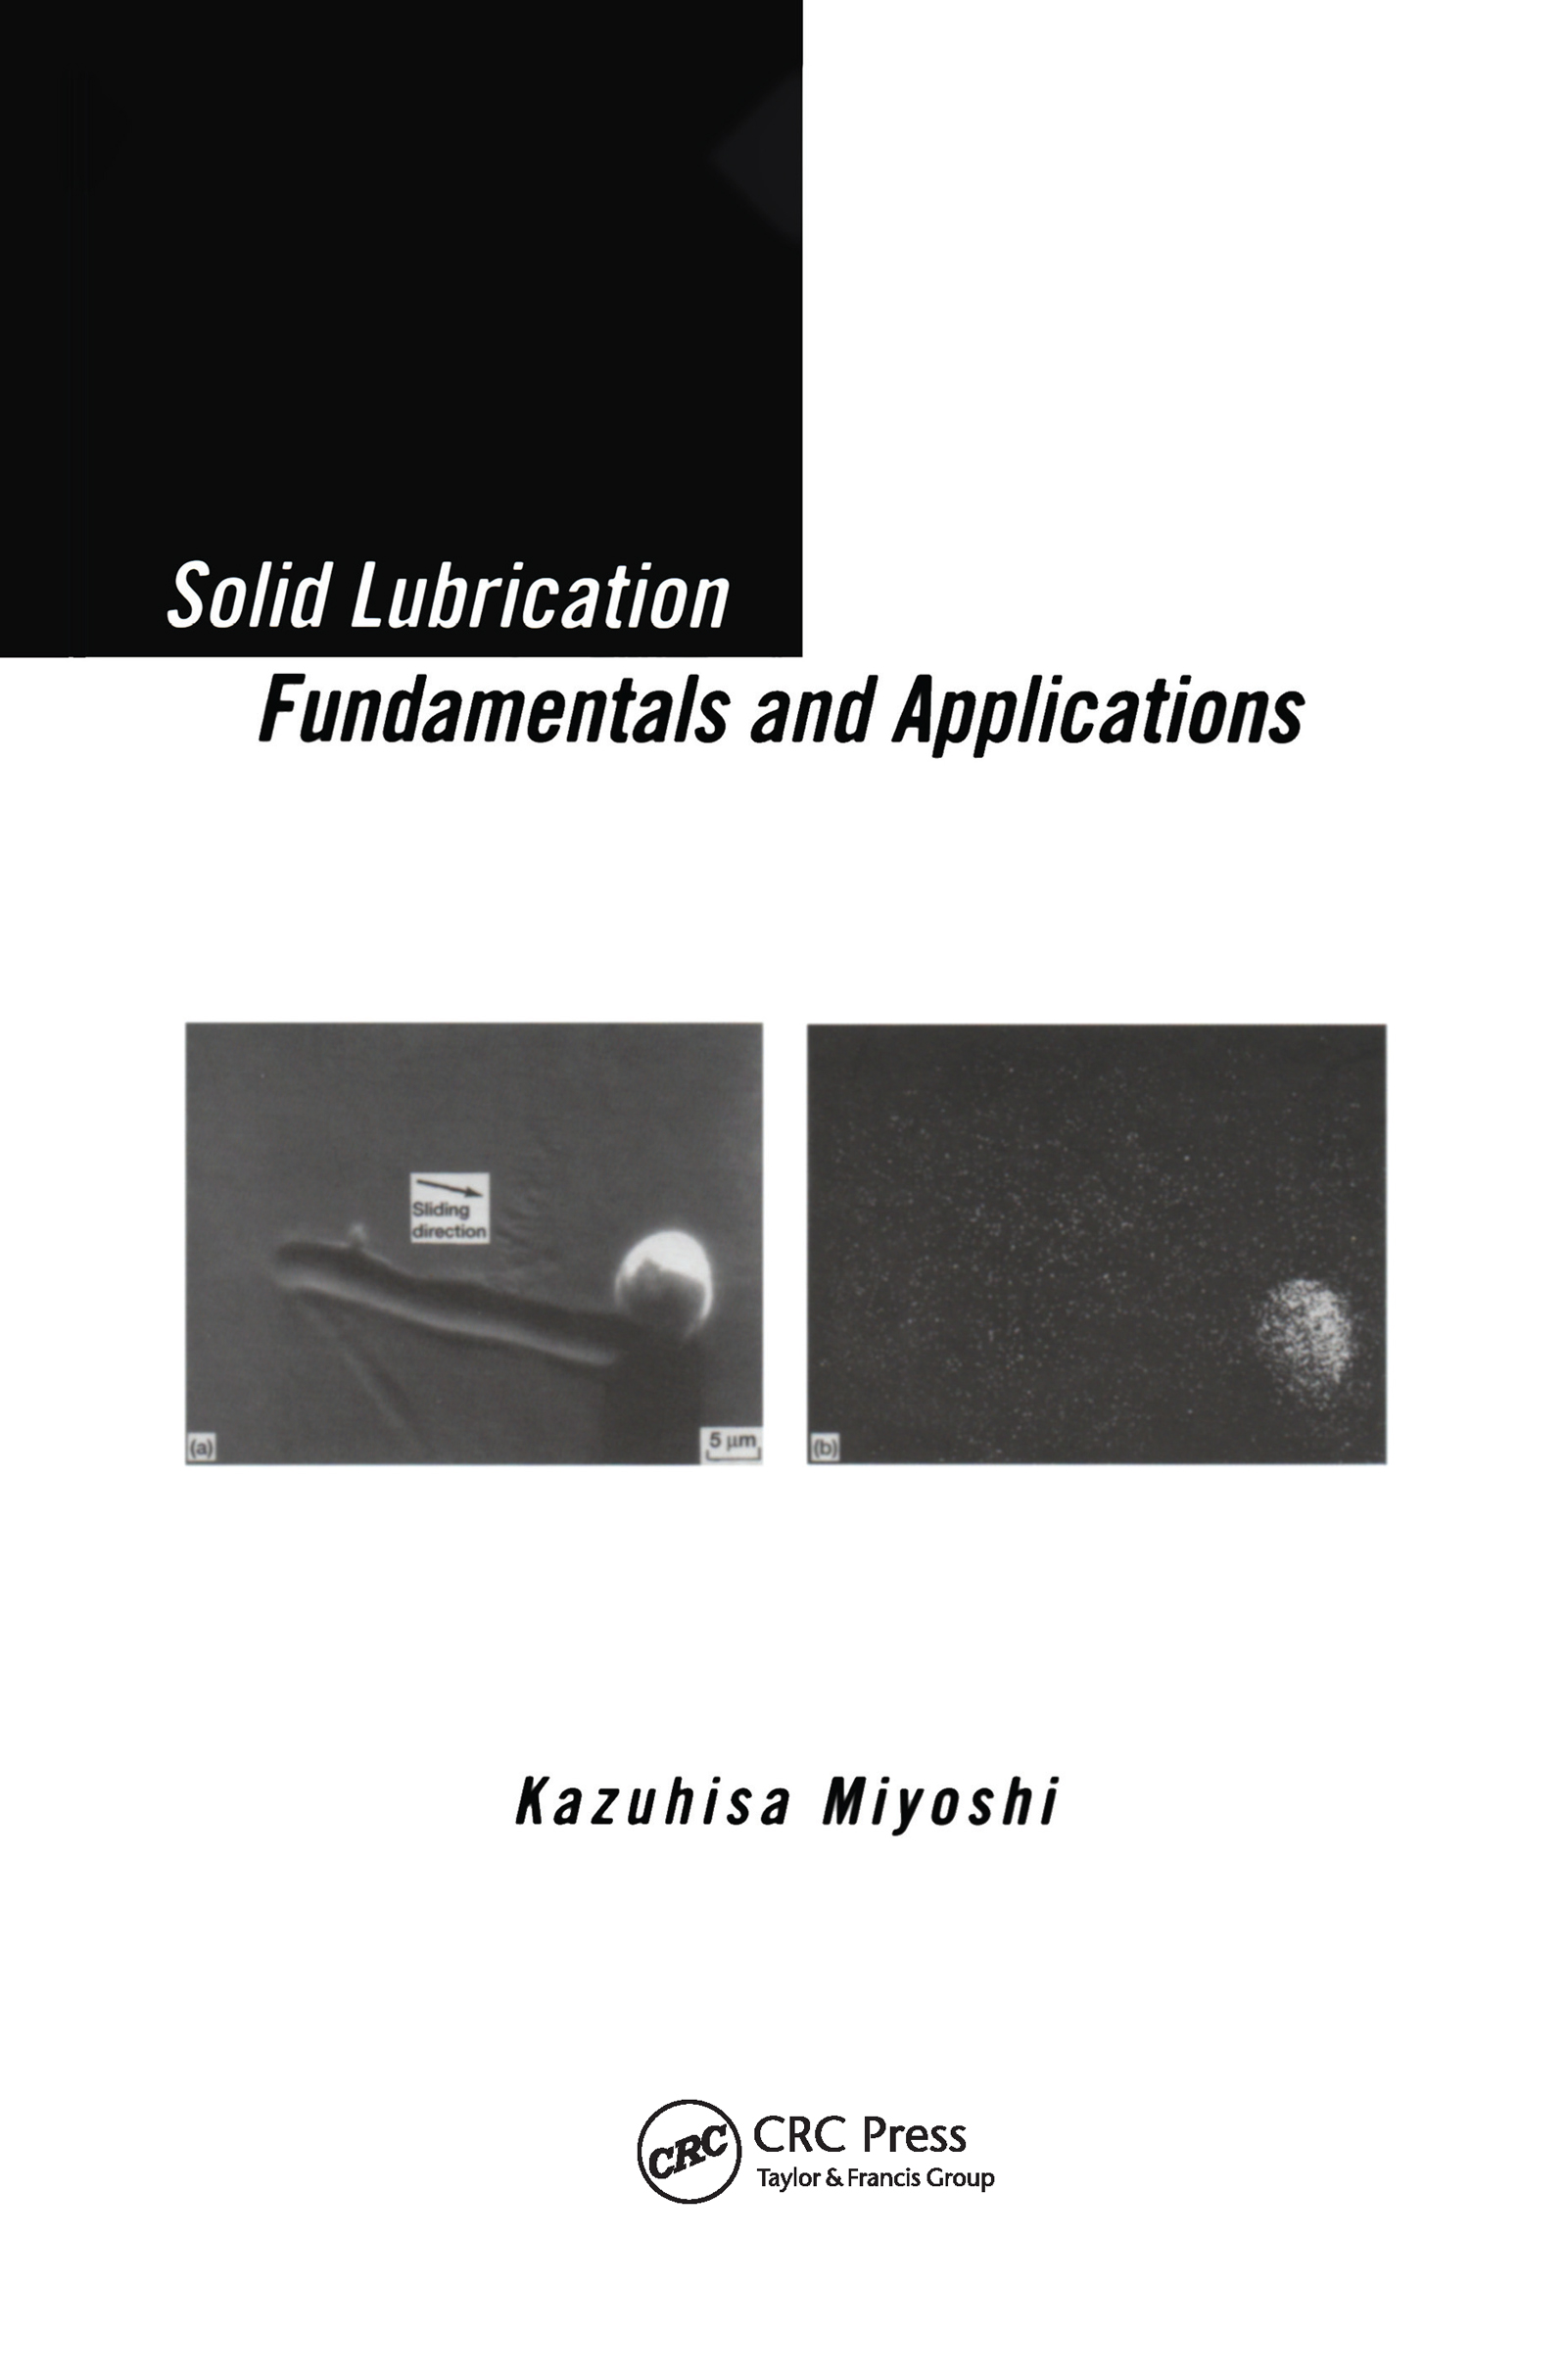 Solid Lubrication Fundamentals and Applications